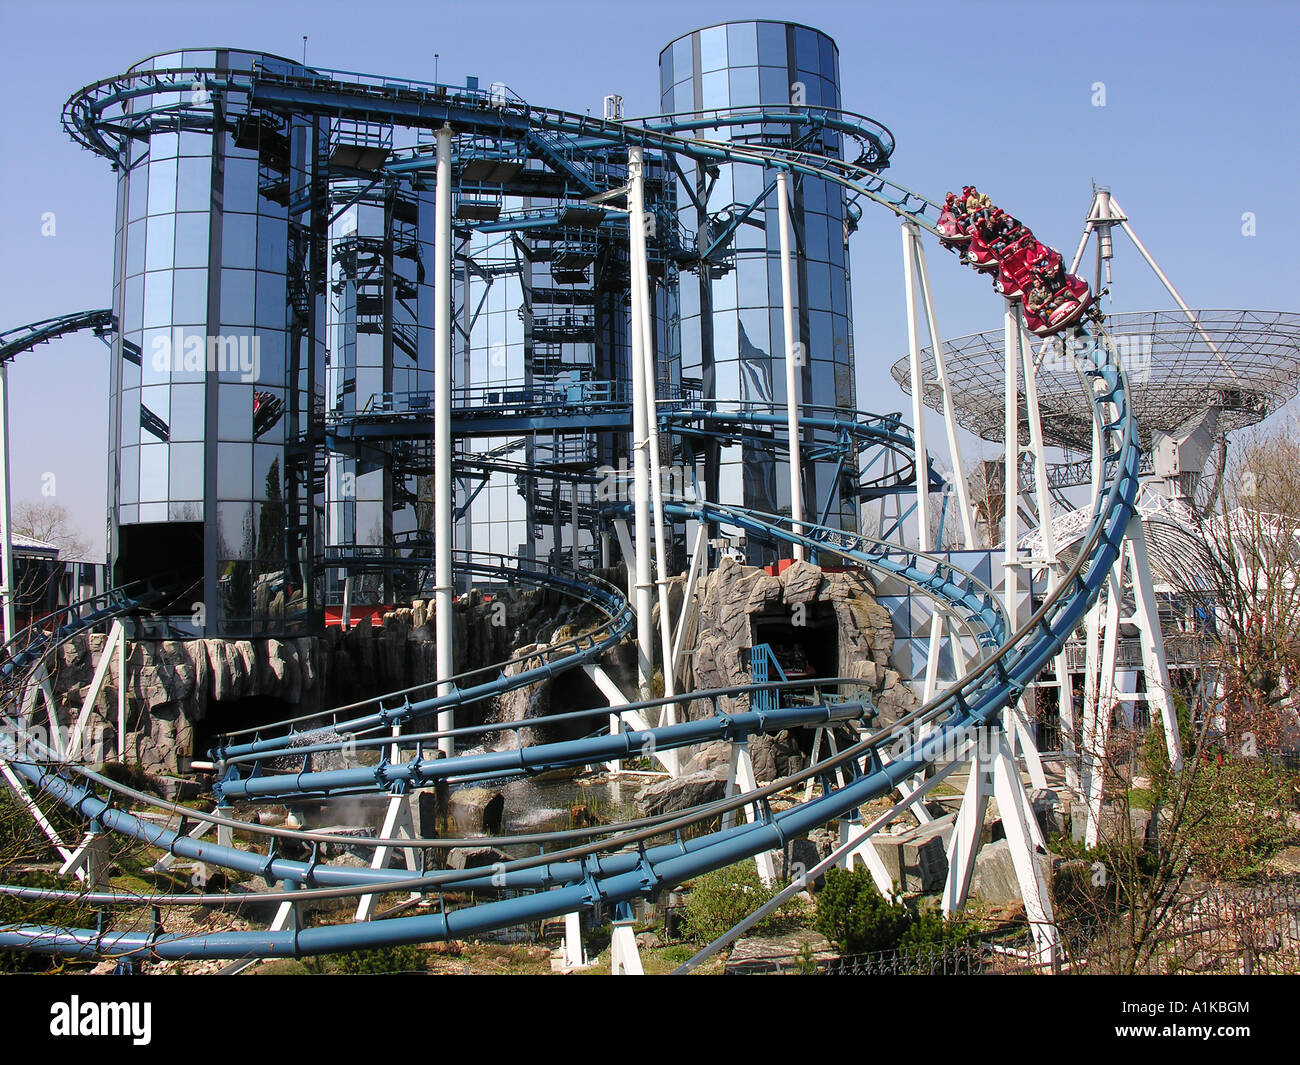 Roller coaster Euromir in the Europapark Rust, Baden-Wuerttemberg, Germany - Stock Image